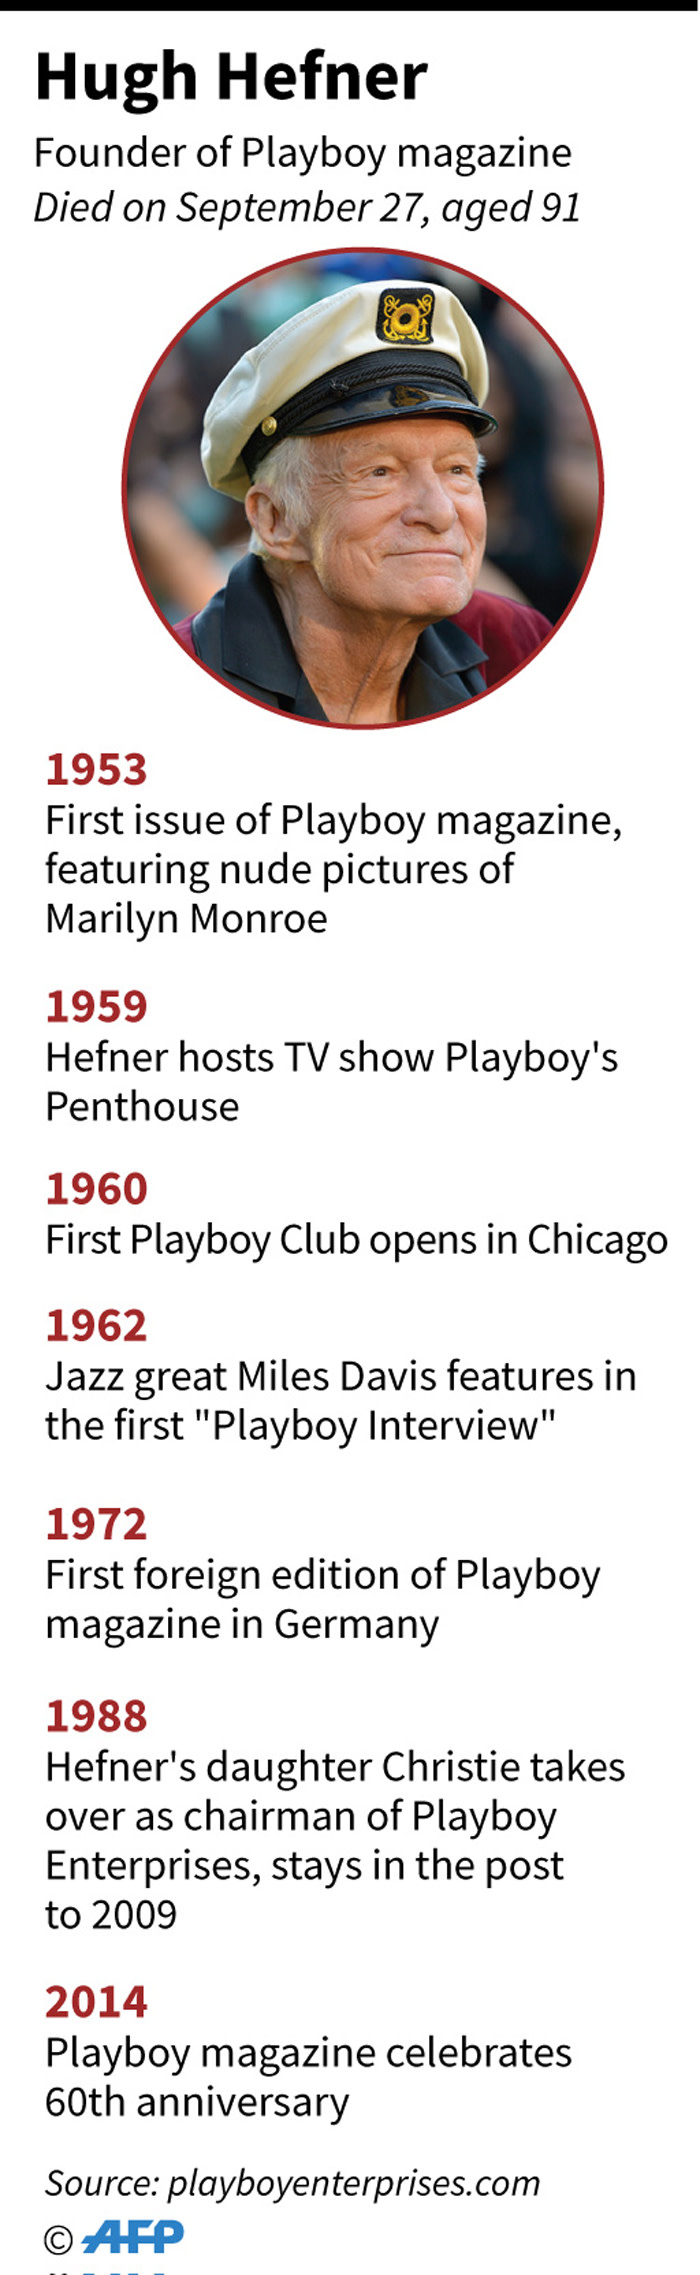 Graphic showing key dates in the development of the Playboy empire. Founder Hugh Hefner died Wednesday aged 91.